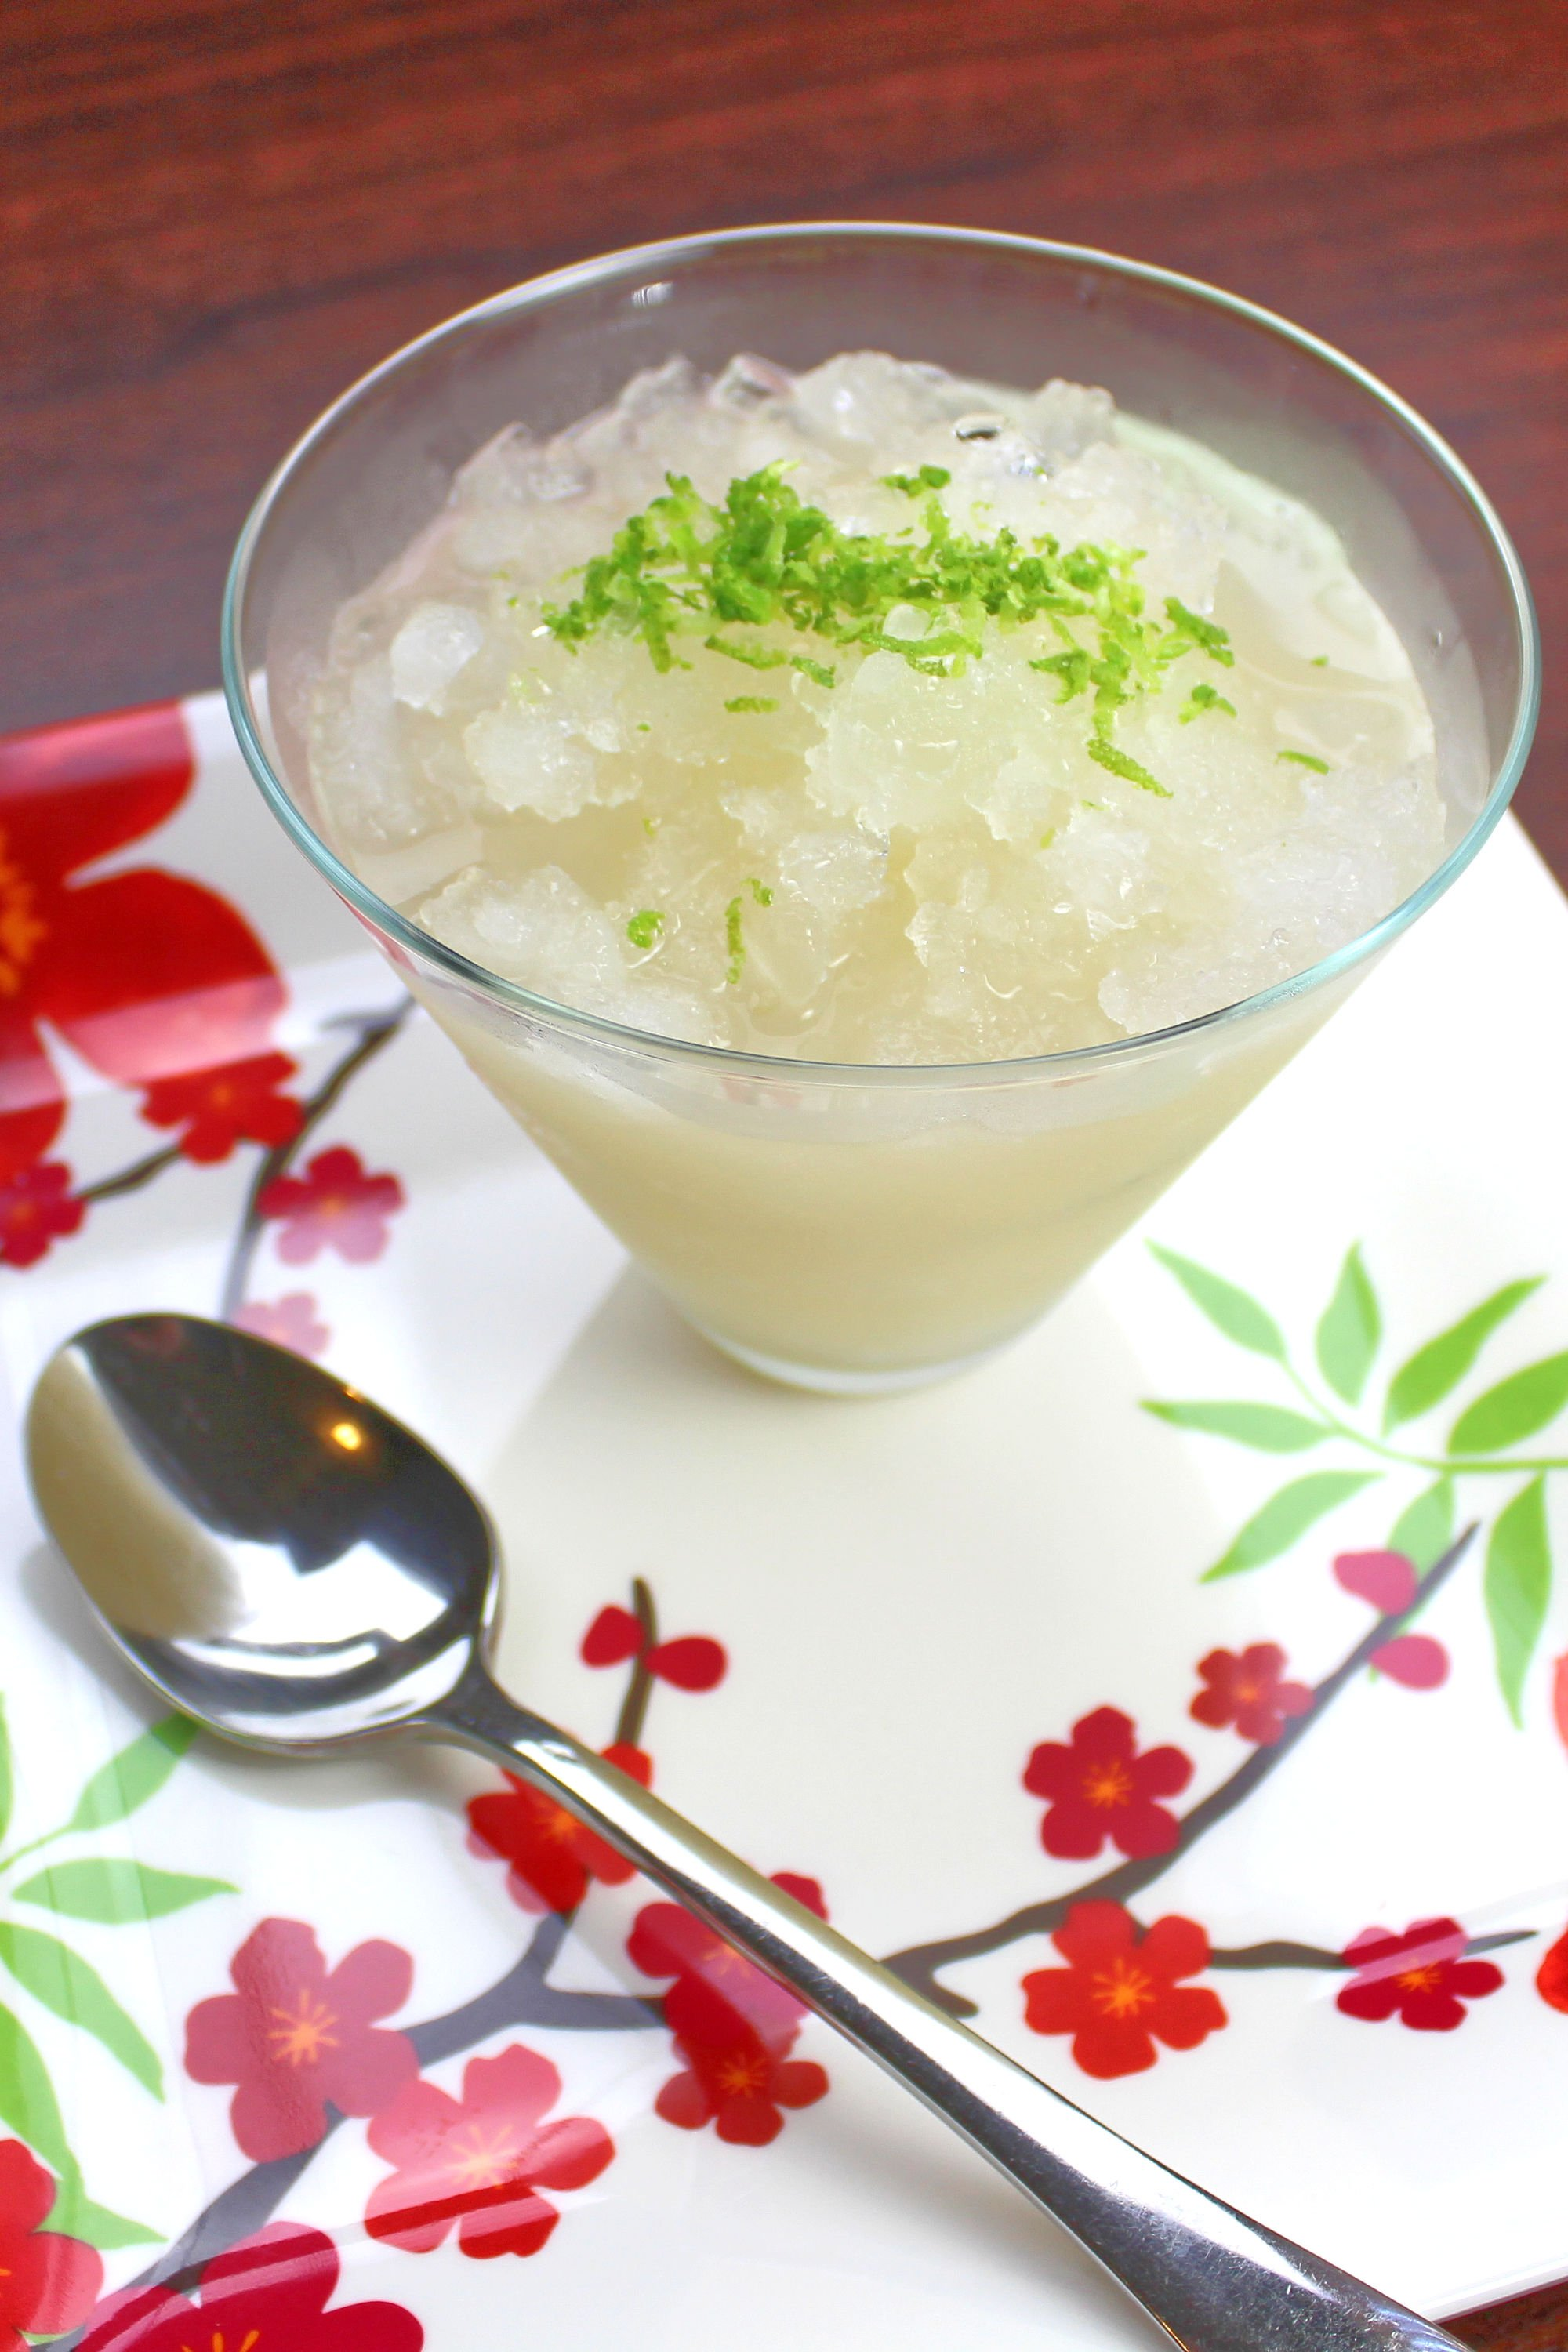 Margarita Granita - Mix That Drink